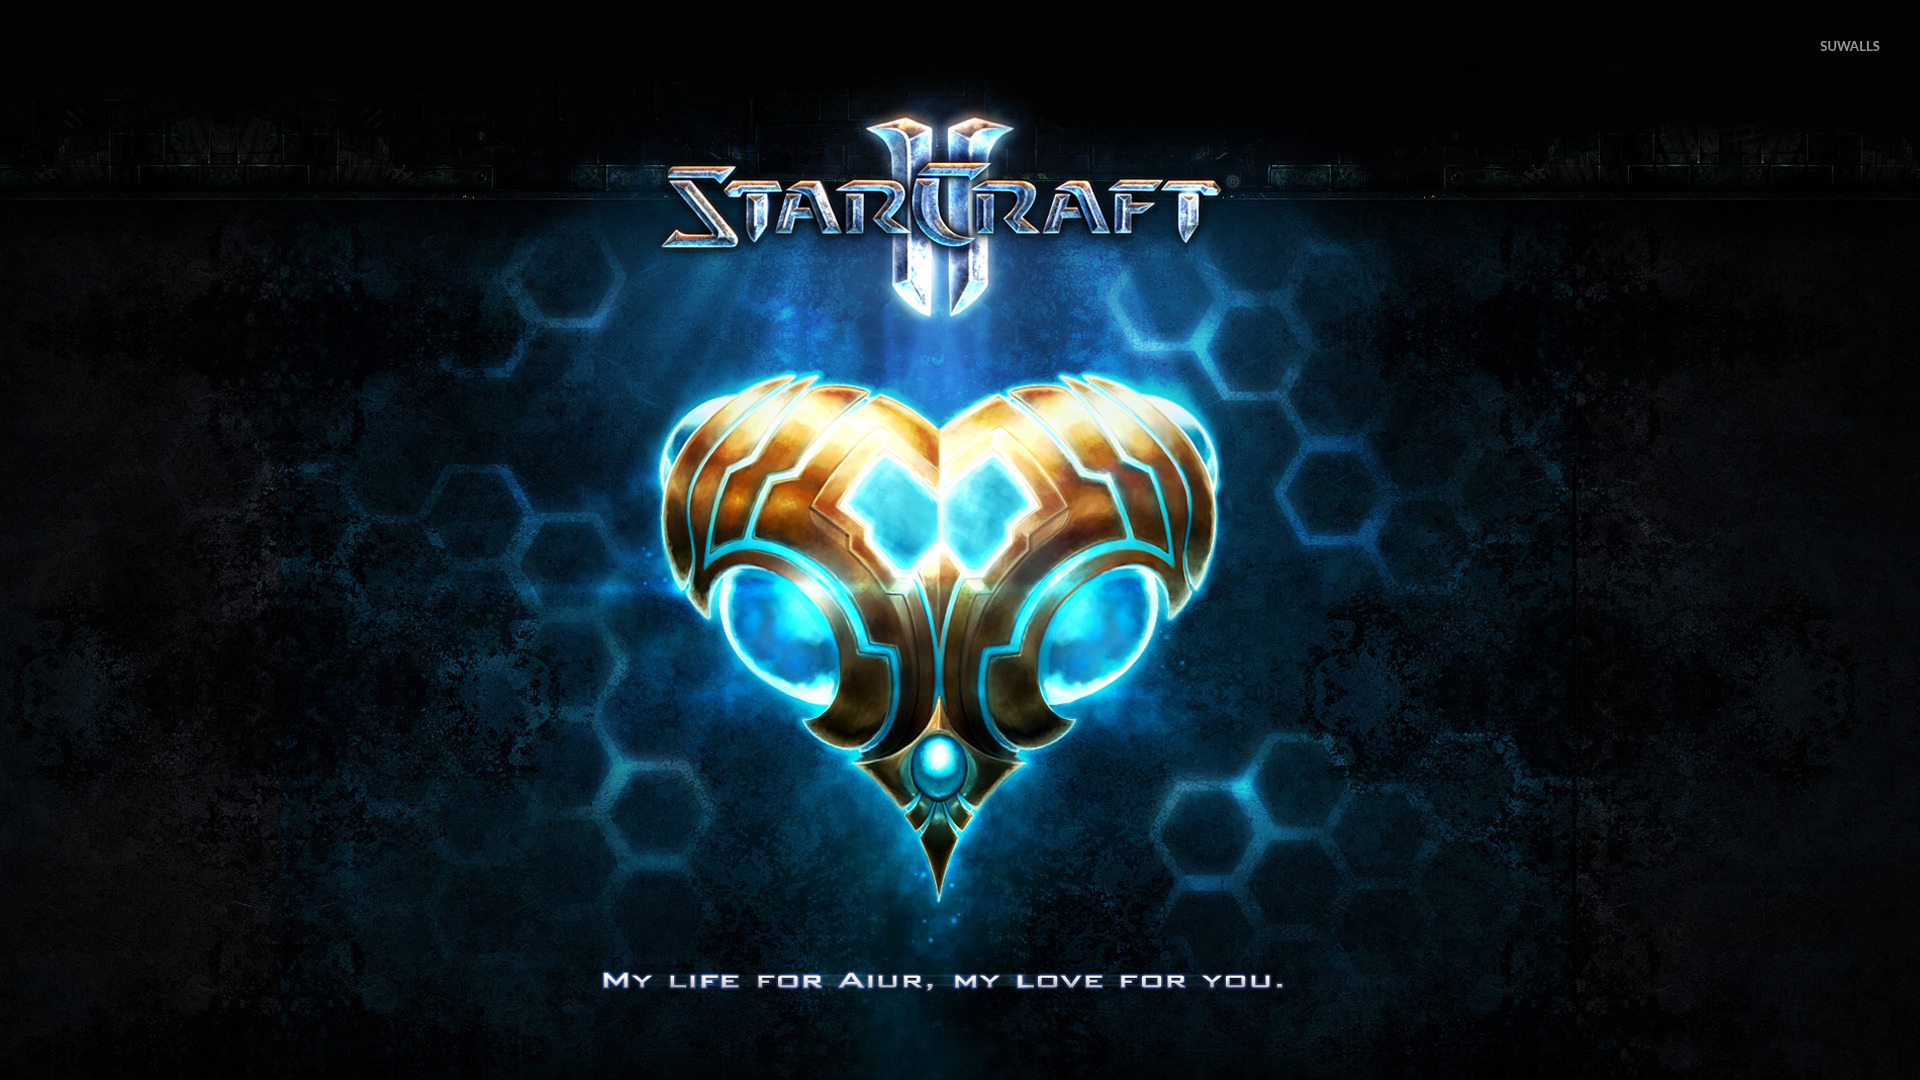 Starcraft Ii Heart Of The Swarm 3 Wallpaper Game